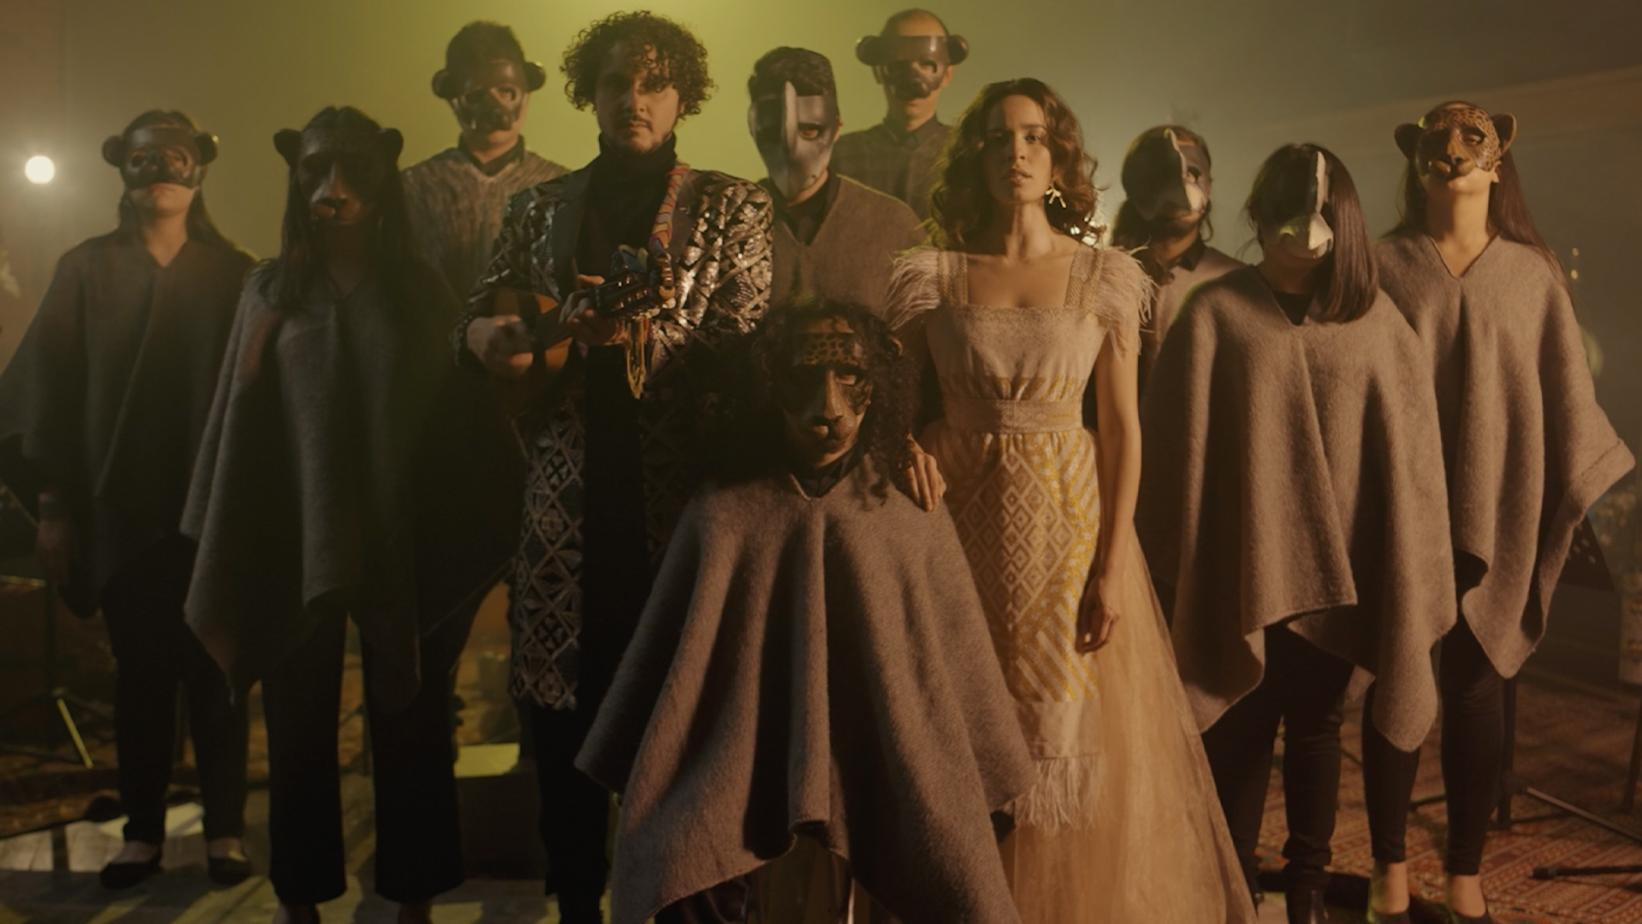 Monsieur Periné poses with their band, who are wearing animal masks